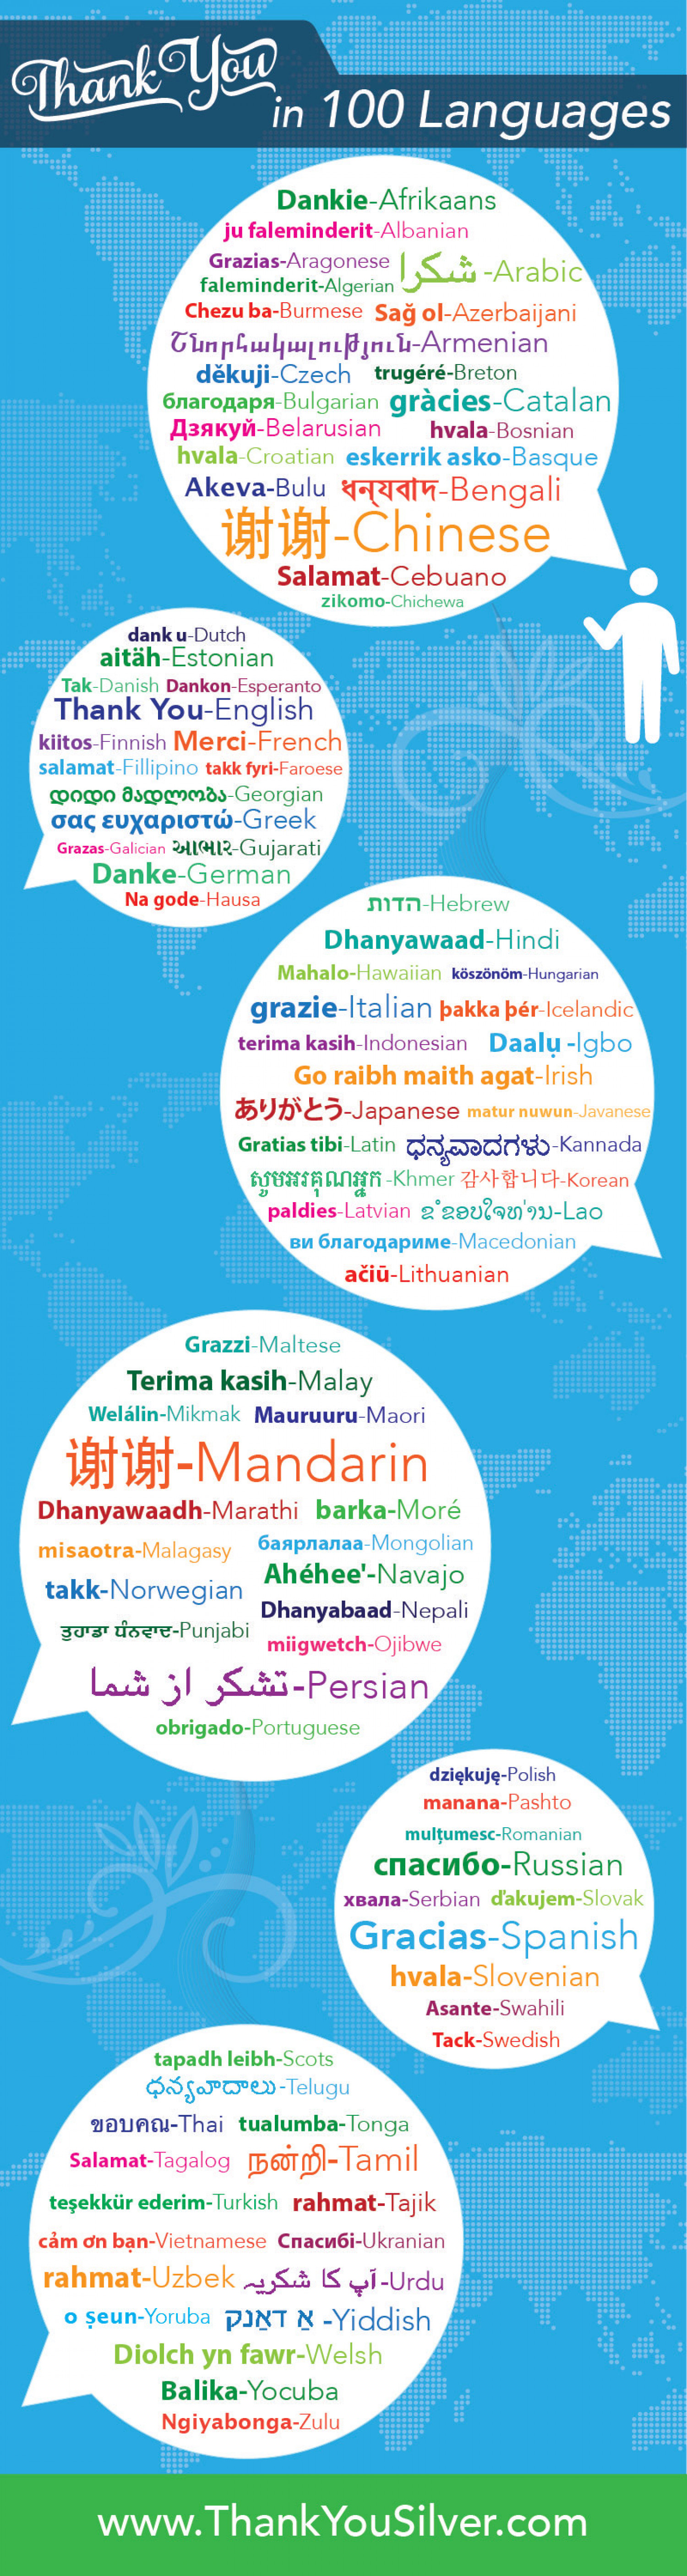 Thank You in 100 Languages Infographic